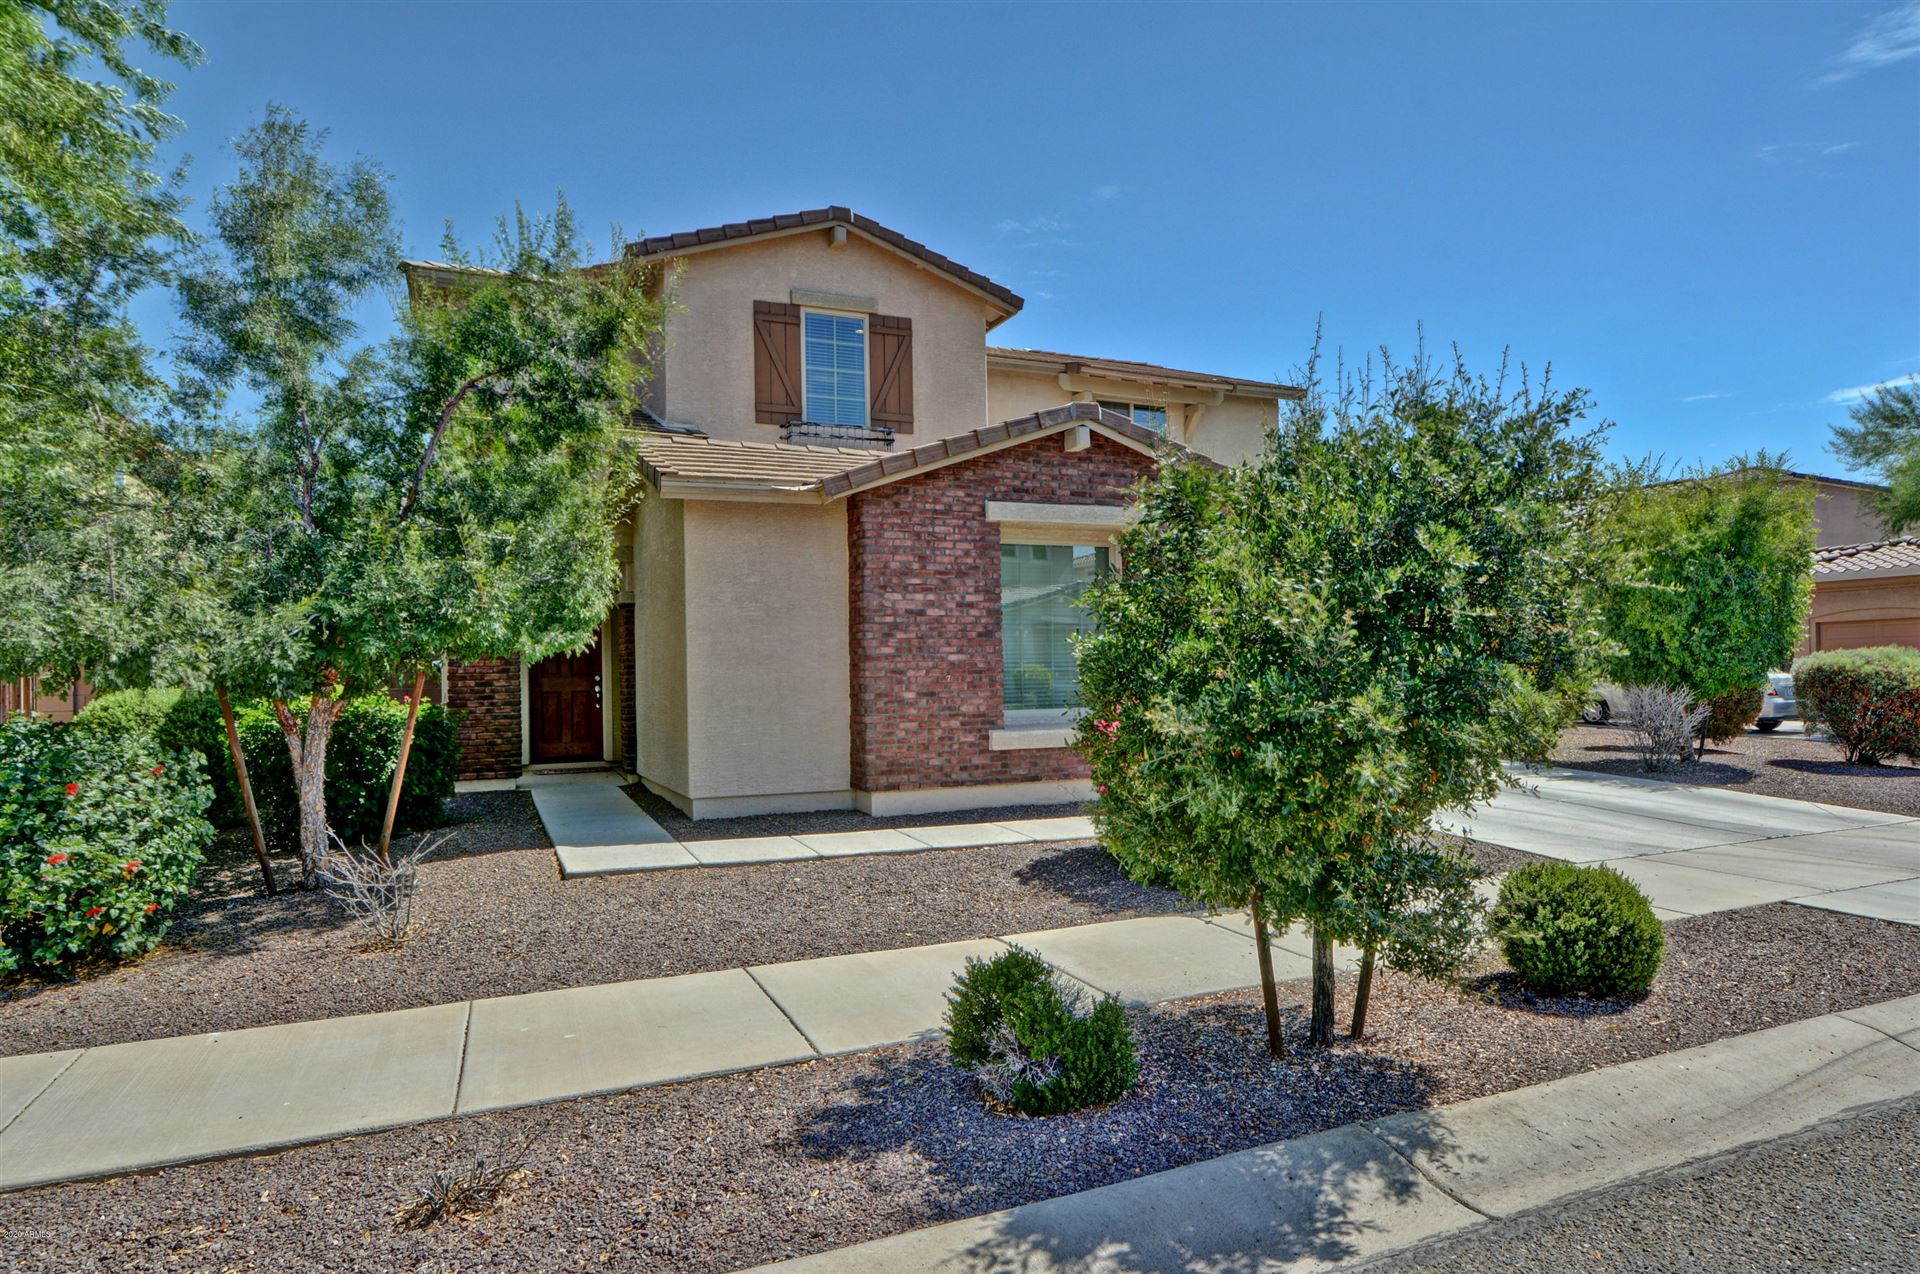 15626 W CORTEZ Street, Surprise, AZ 85379 - MLS#: 6097367